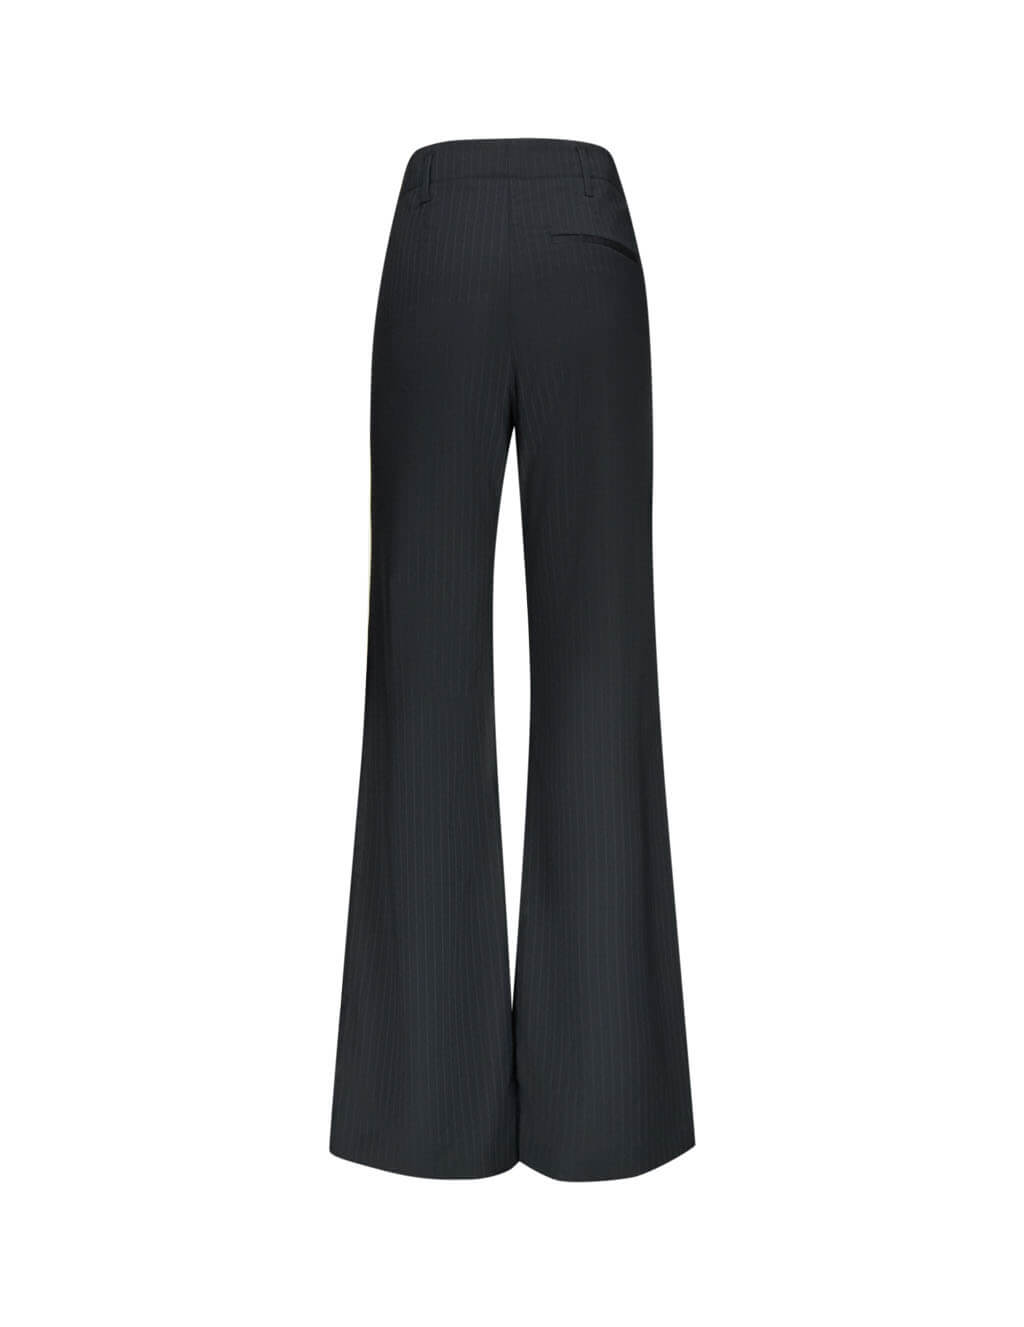 Joseph Women's Ido Pinstripe Wool Blend Trousers Jp0007720370